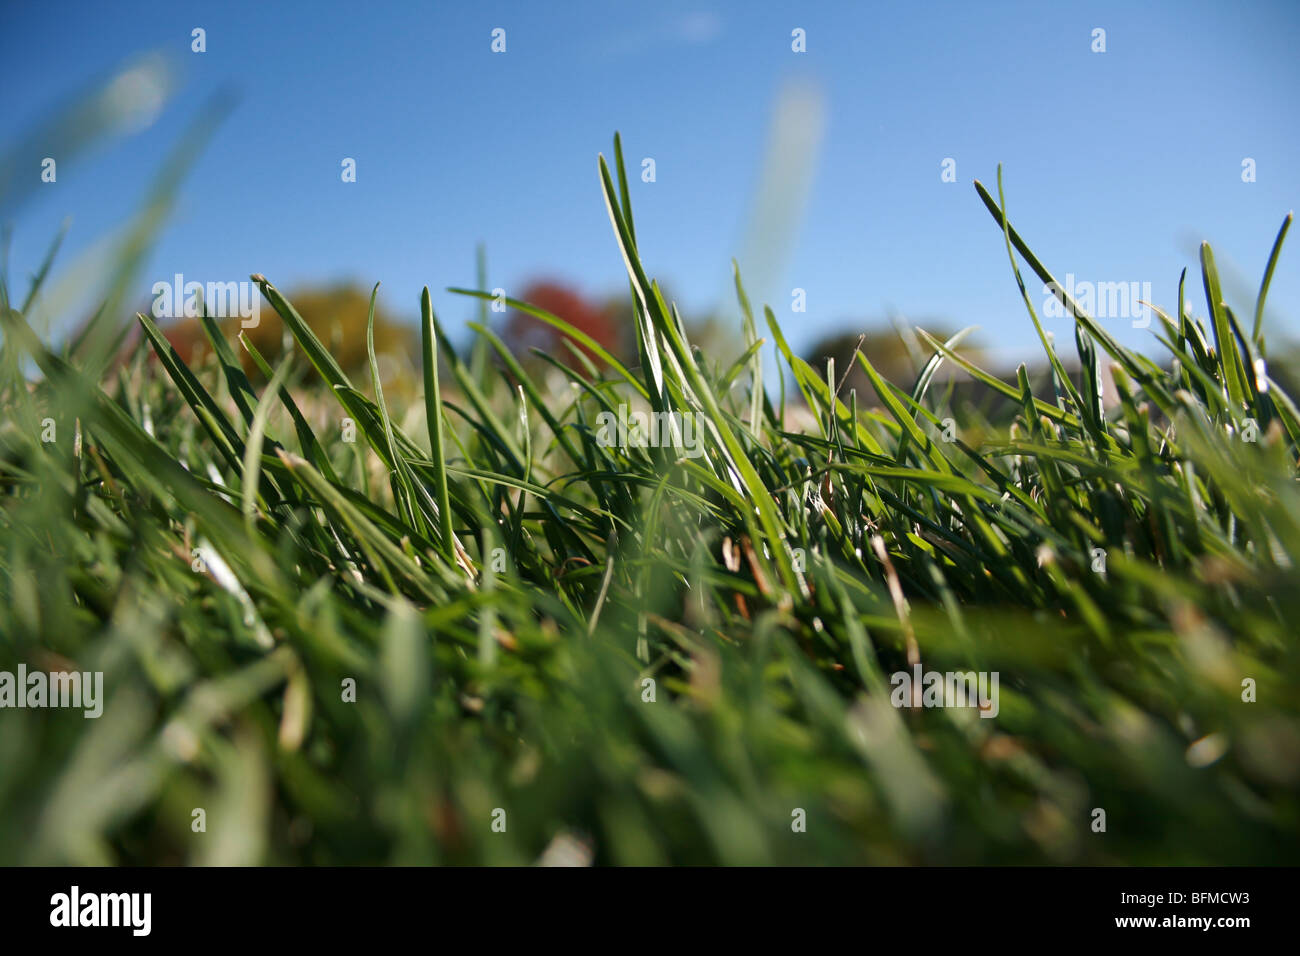 close up, blades of grass under blue sky - Stock Image